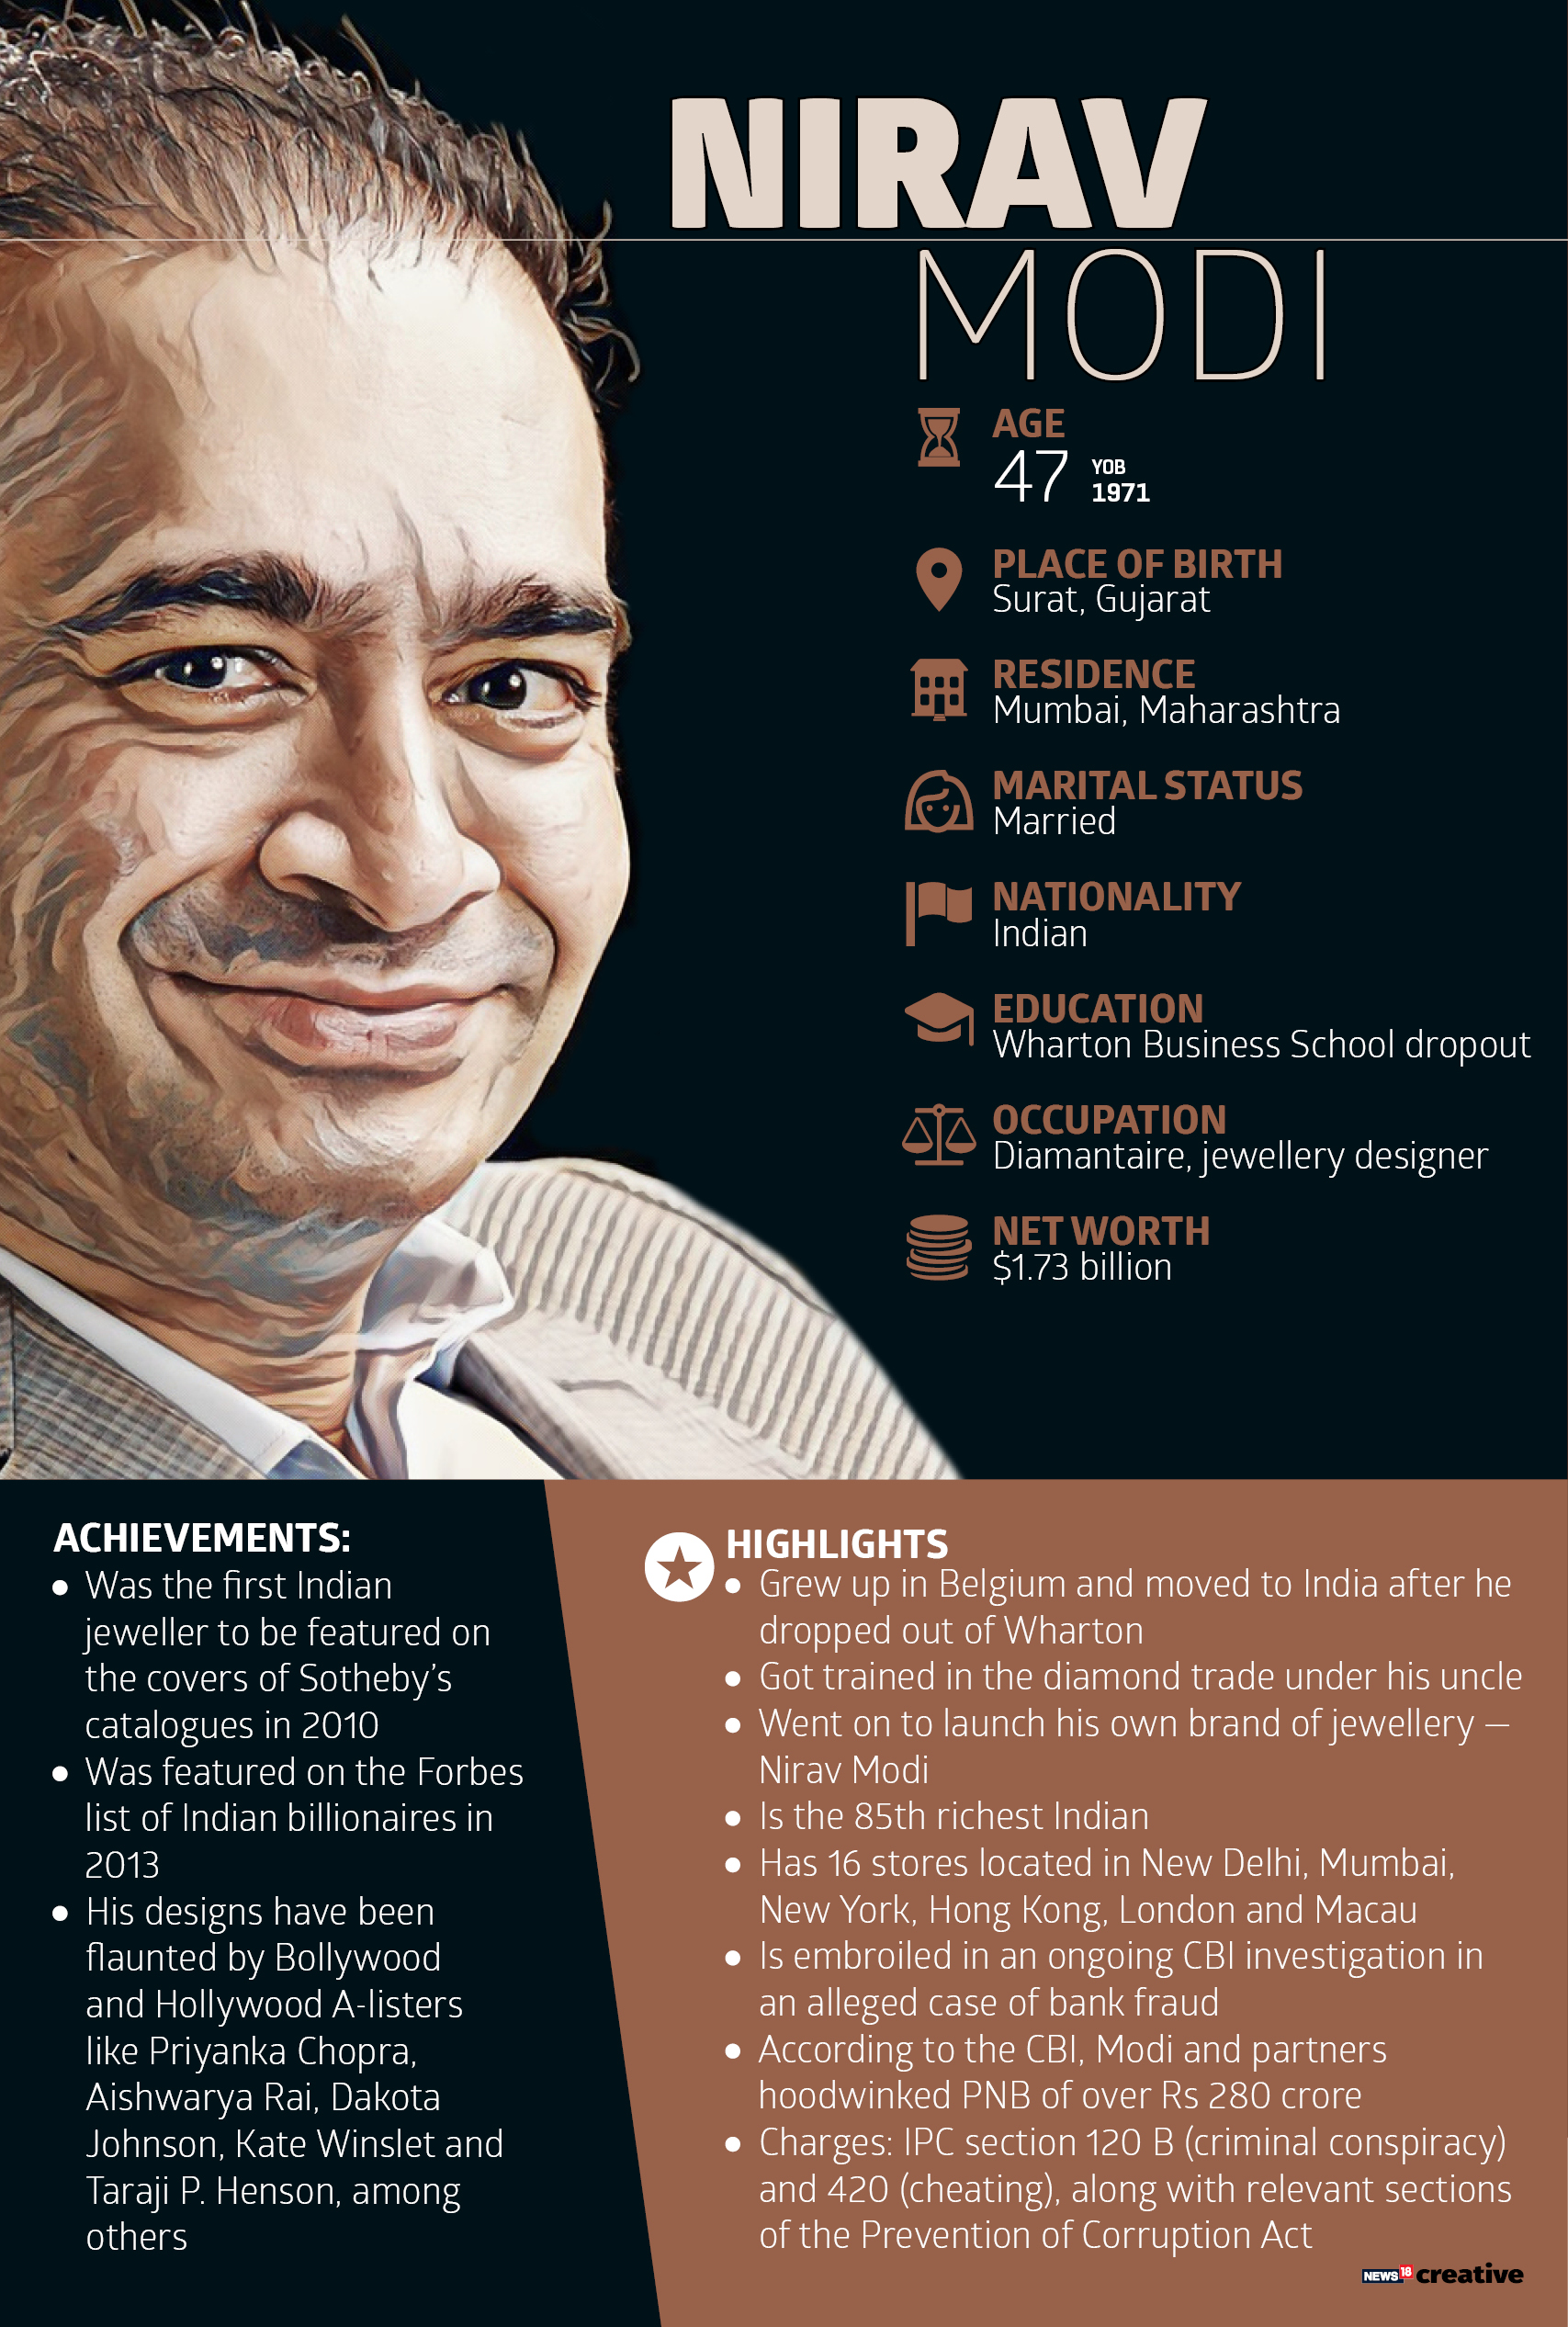 Here's something to know about Nirav Modi